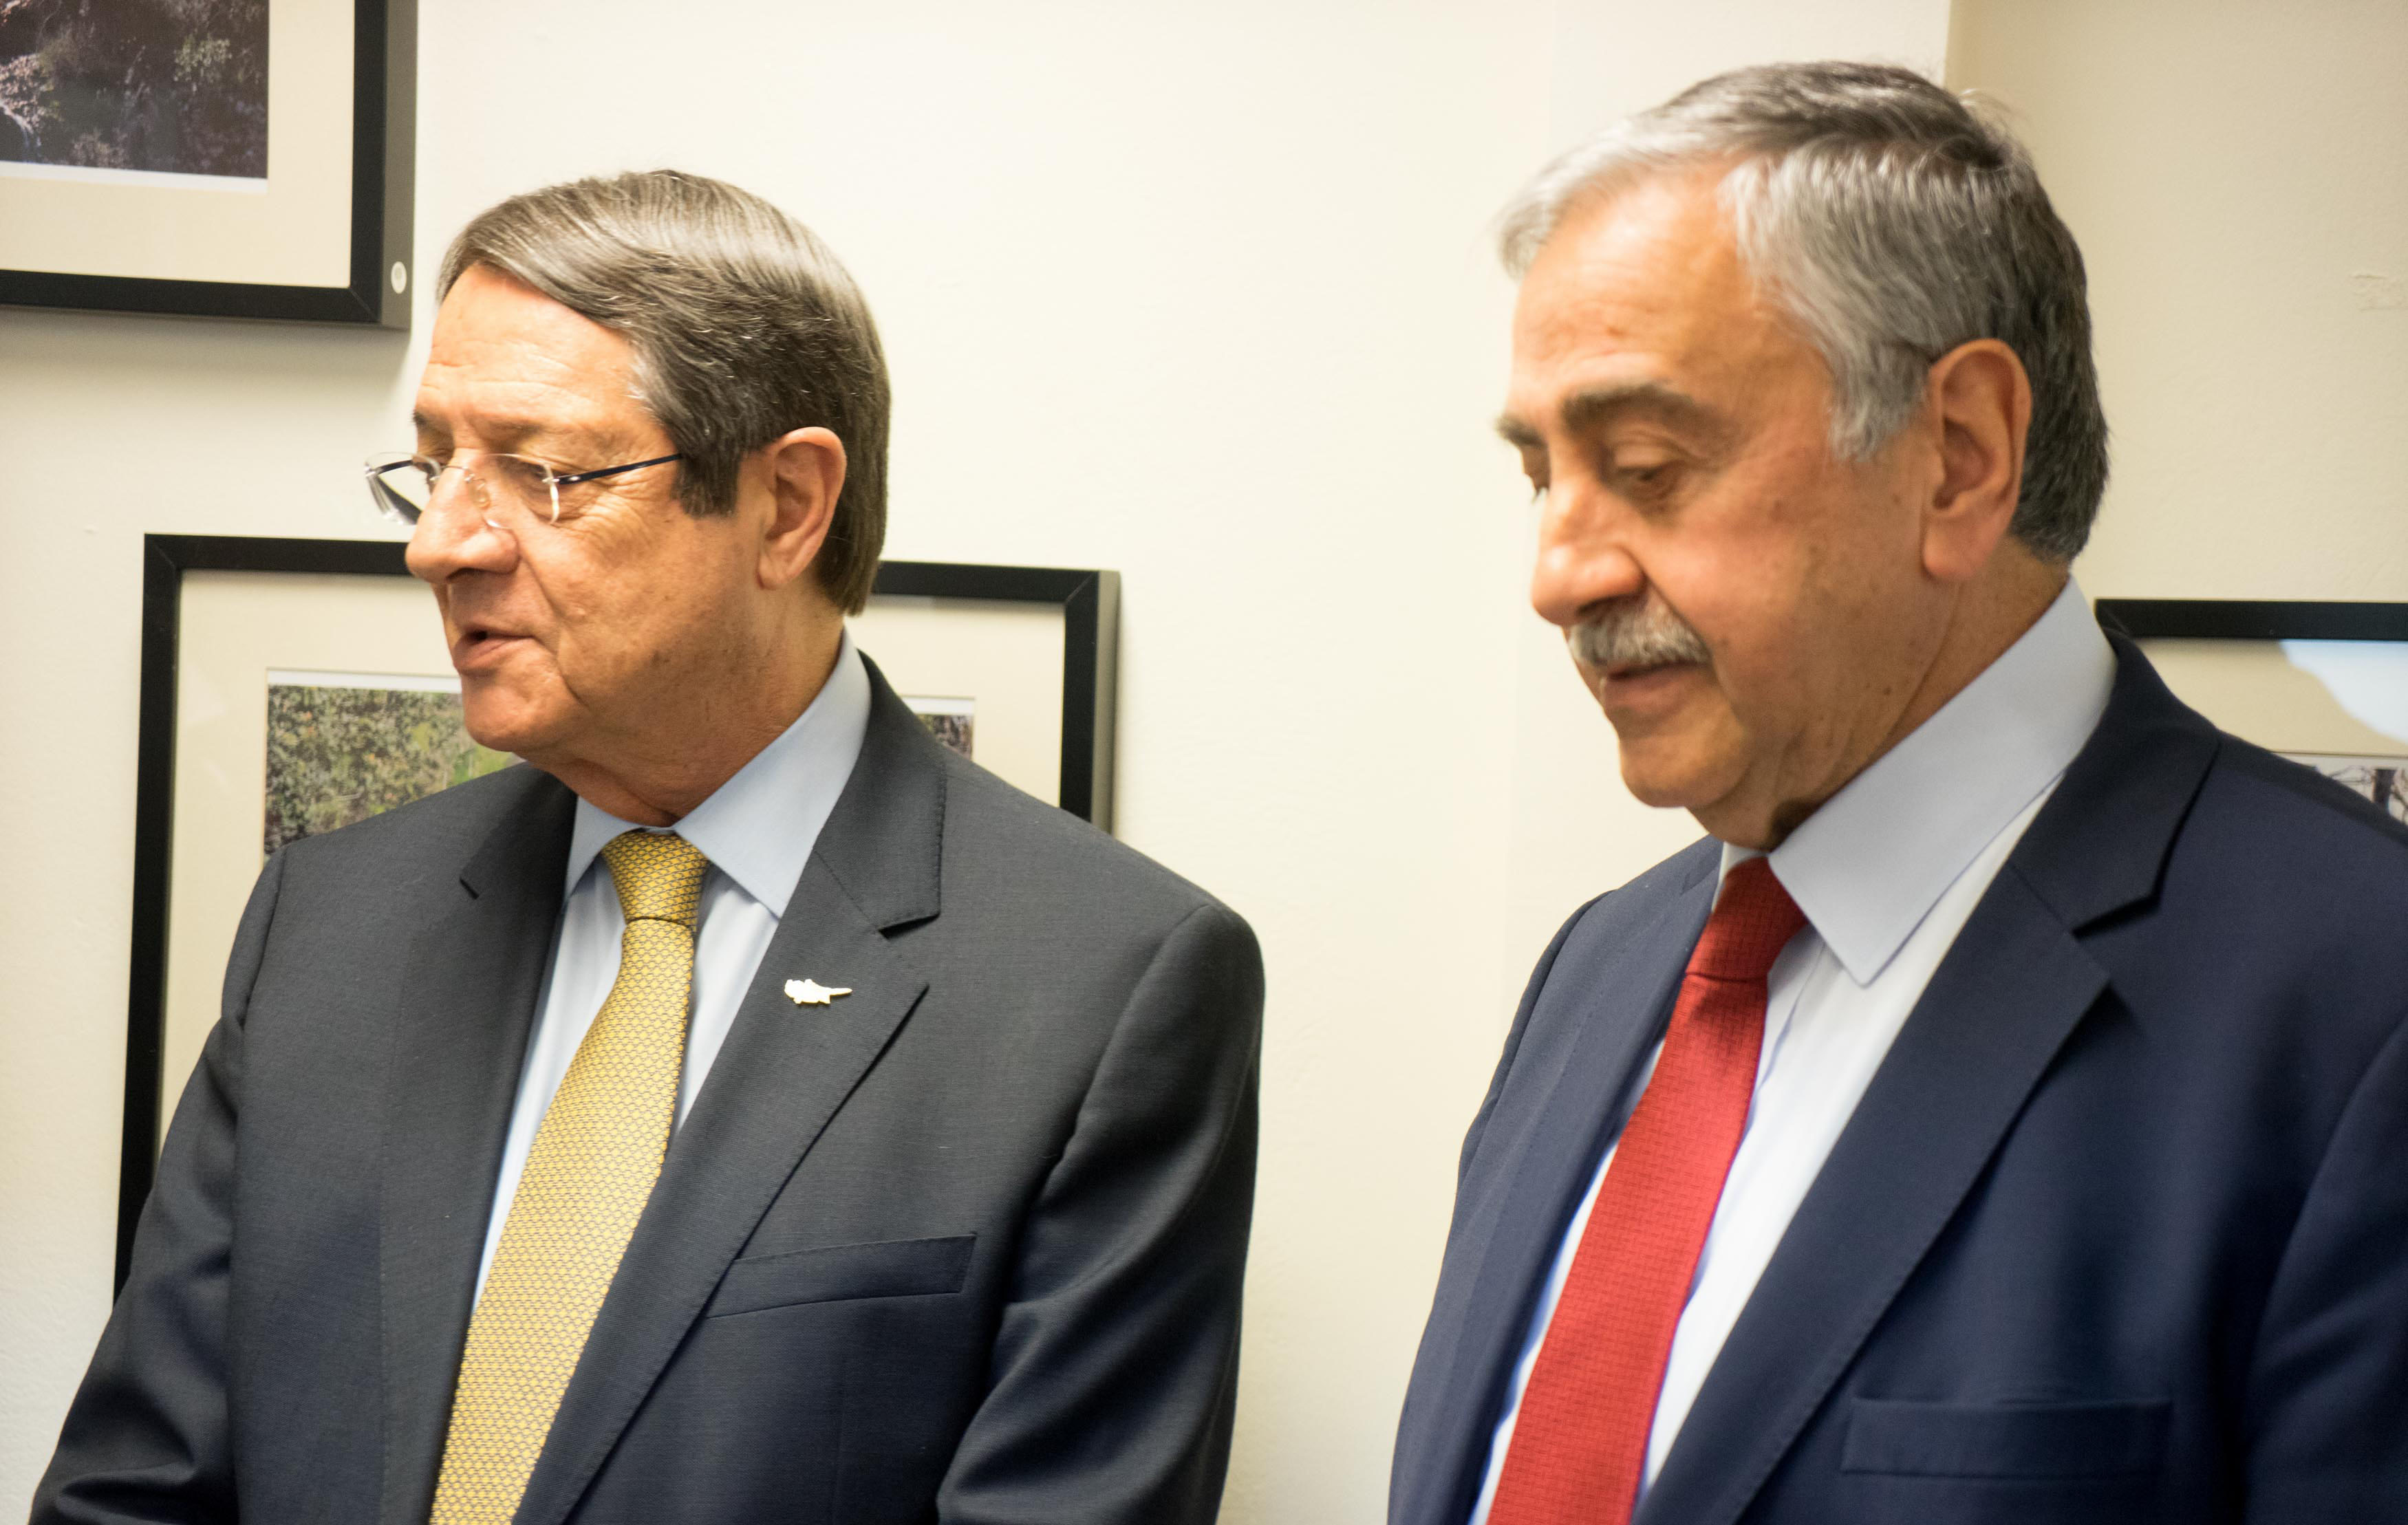 Anastasiades wants all issues on the table in the meeting with Akinji